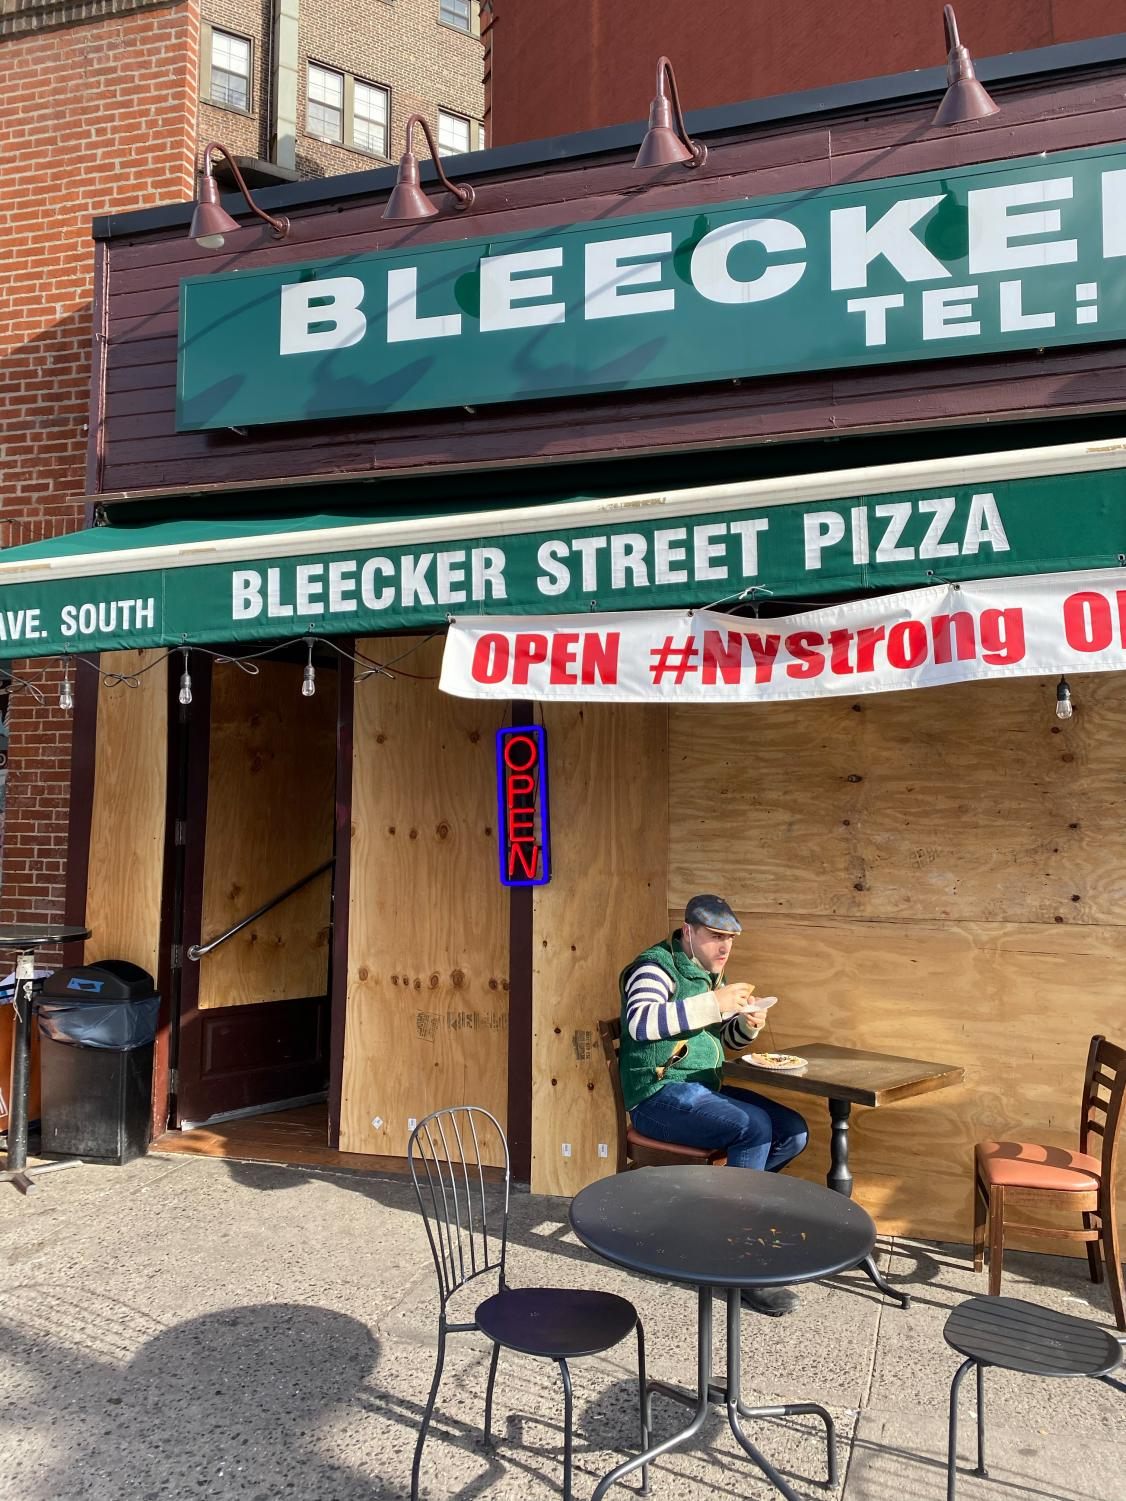 Bleecker Street Pizza with the windows boarded up and a patron eating a table outside